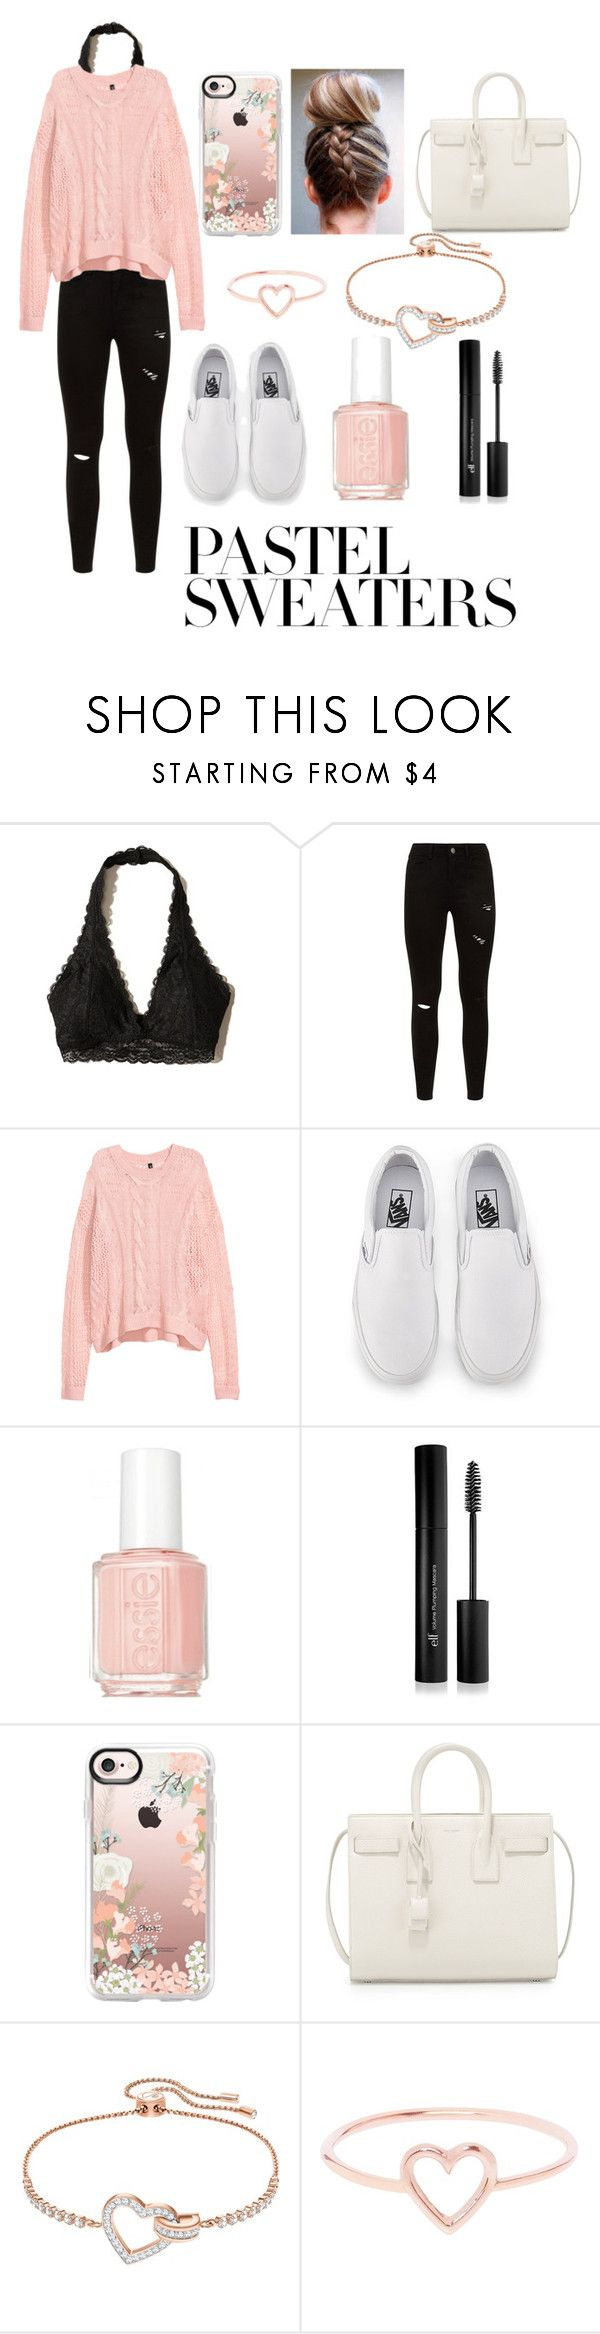 """Pink pastel sweater"" by ava83lewis on Polyvore featuring Hollister Co., Vans, Essie, Forever 21, Casetify, Yves Saint Laurent, Swarovski, Love Is and pastelsweaters"